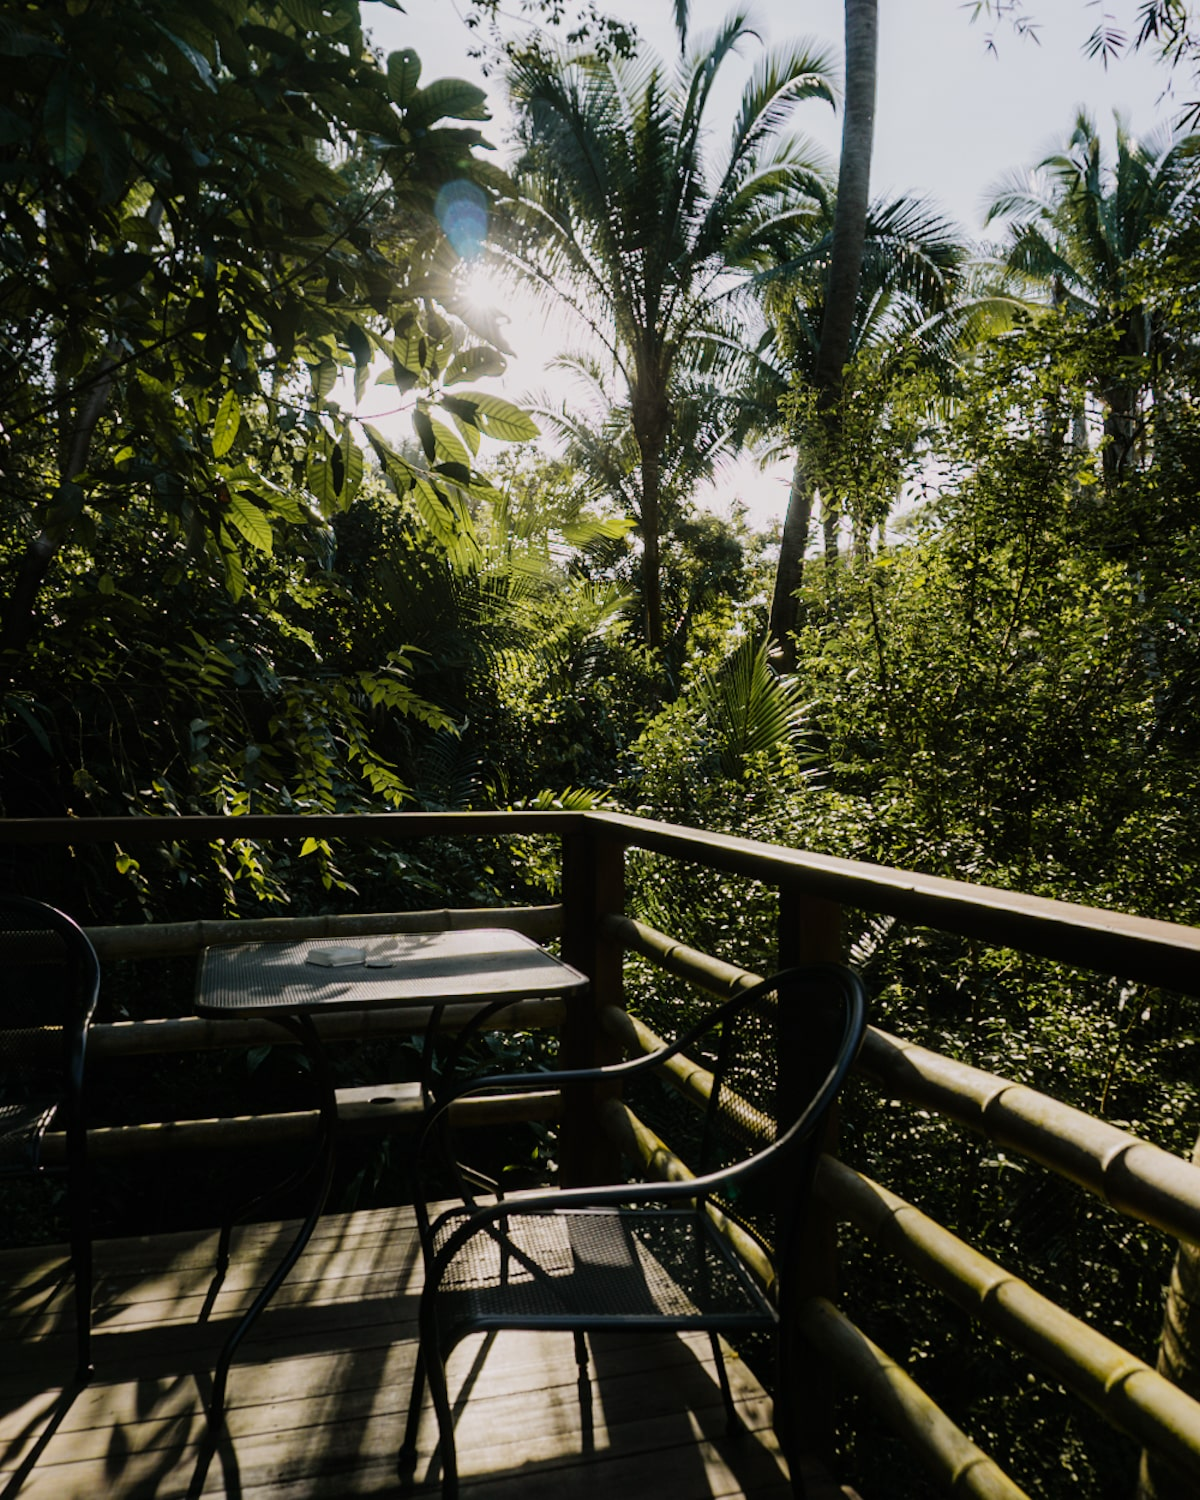 Tropical jungle views @ Aldea Bamboo in San Pancho Mexico | Bucketlist Bri